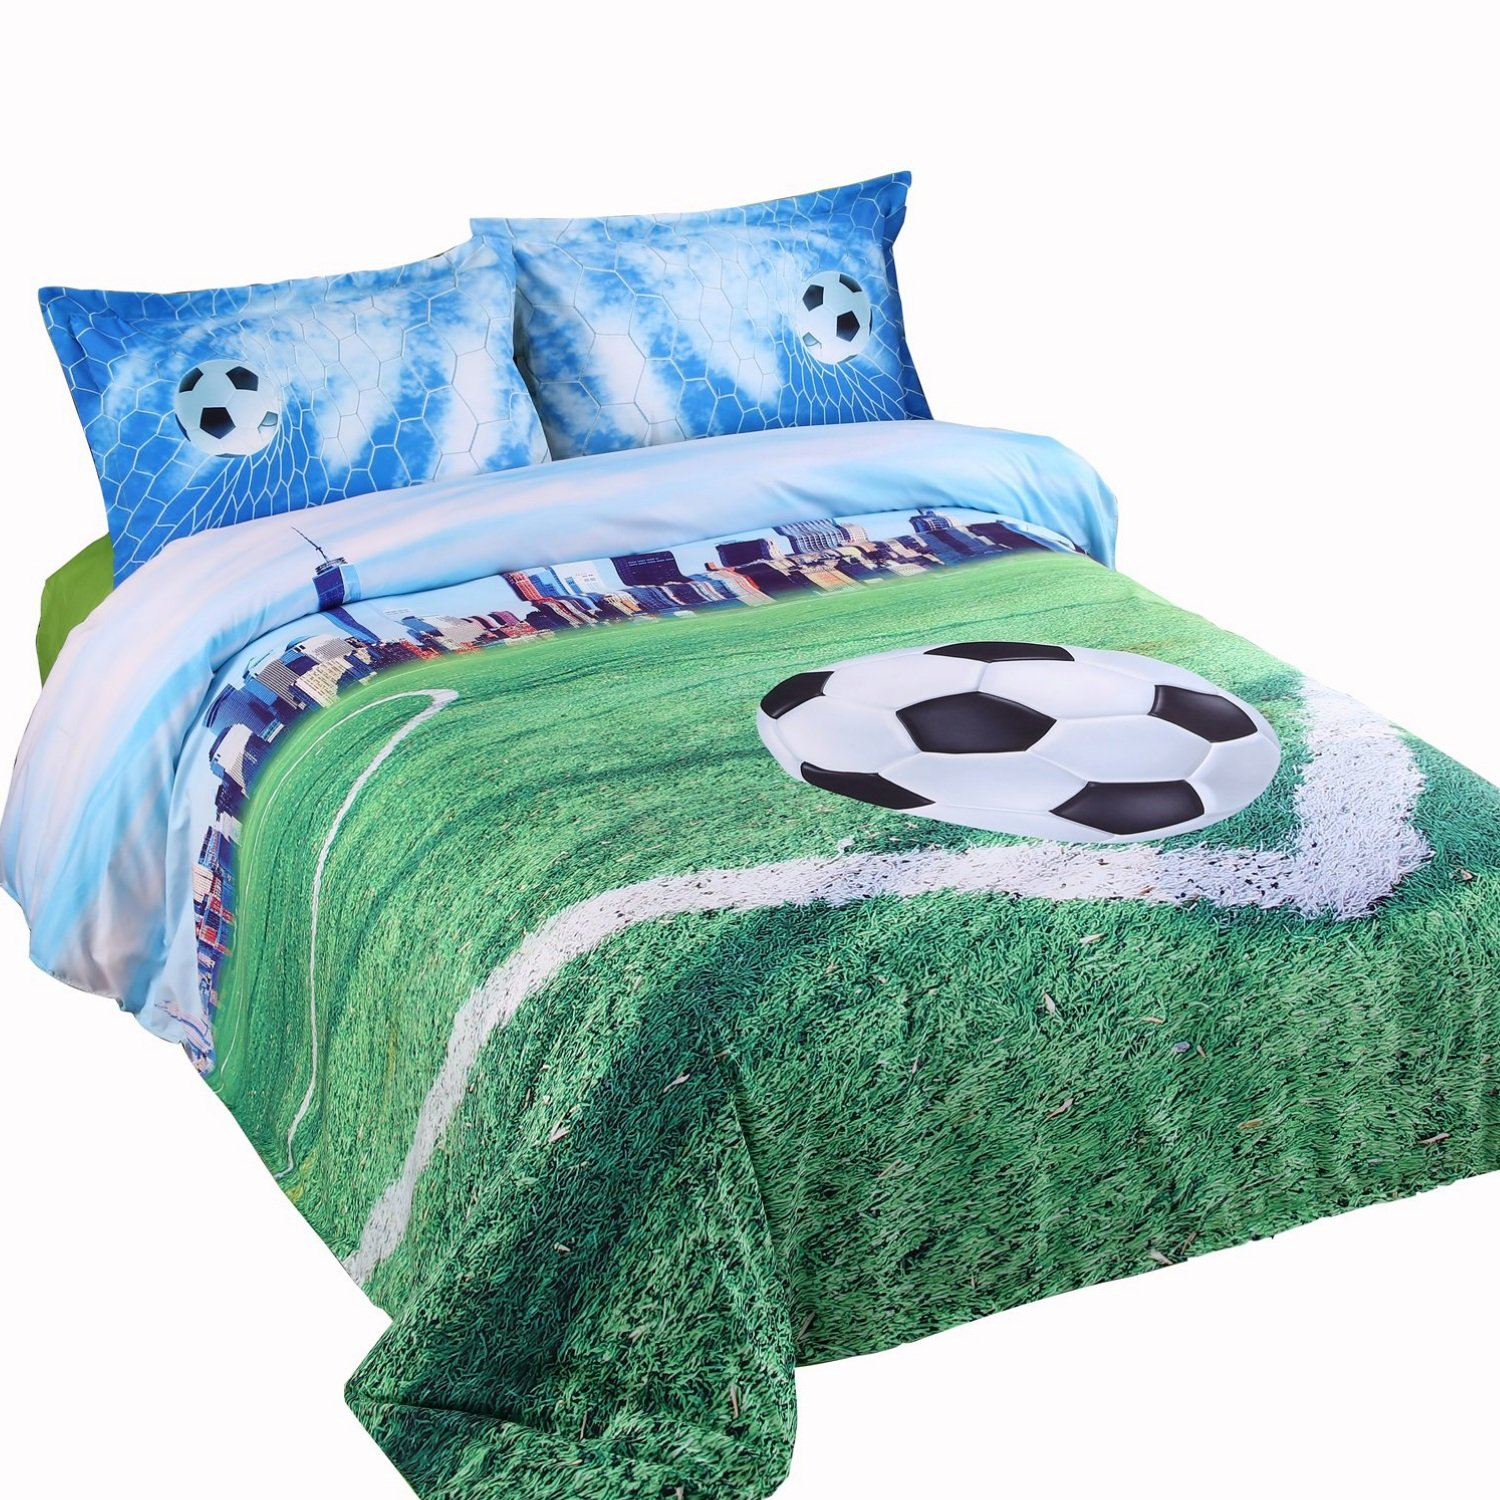 Alicemall 3D Soccer Field and City Scenery Duvet Cover Set 4 Pieces Cotton and Tencel Blended Unique Cool Sports Bedding Set, Full Size College Bedding for Girls and Boys (Full, Light Blue)